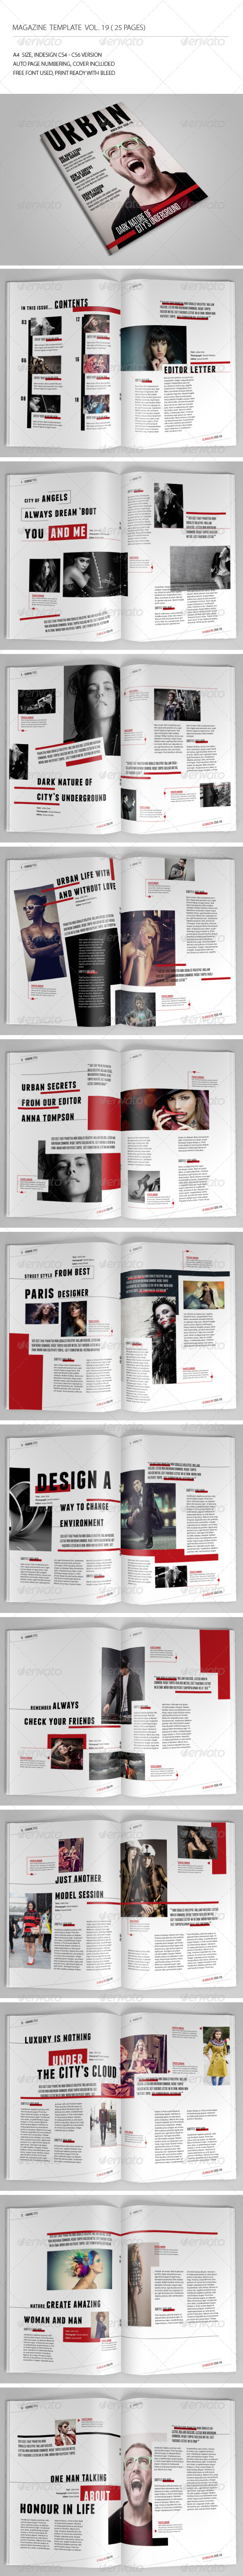 25 Pages Urban Magazine Vol19 - Magazines Print Templates